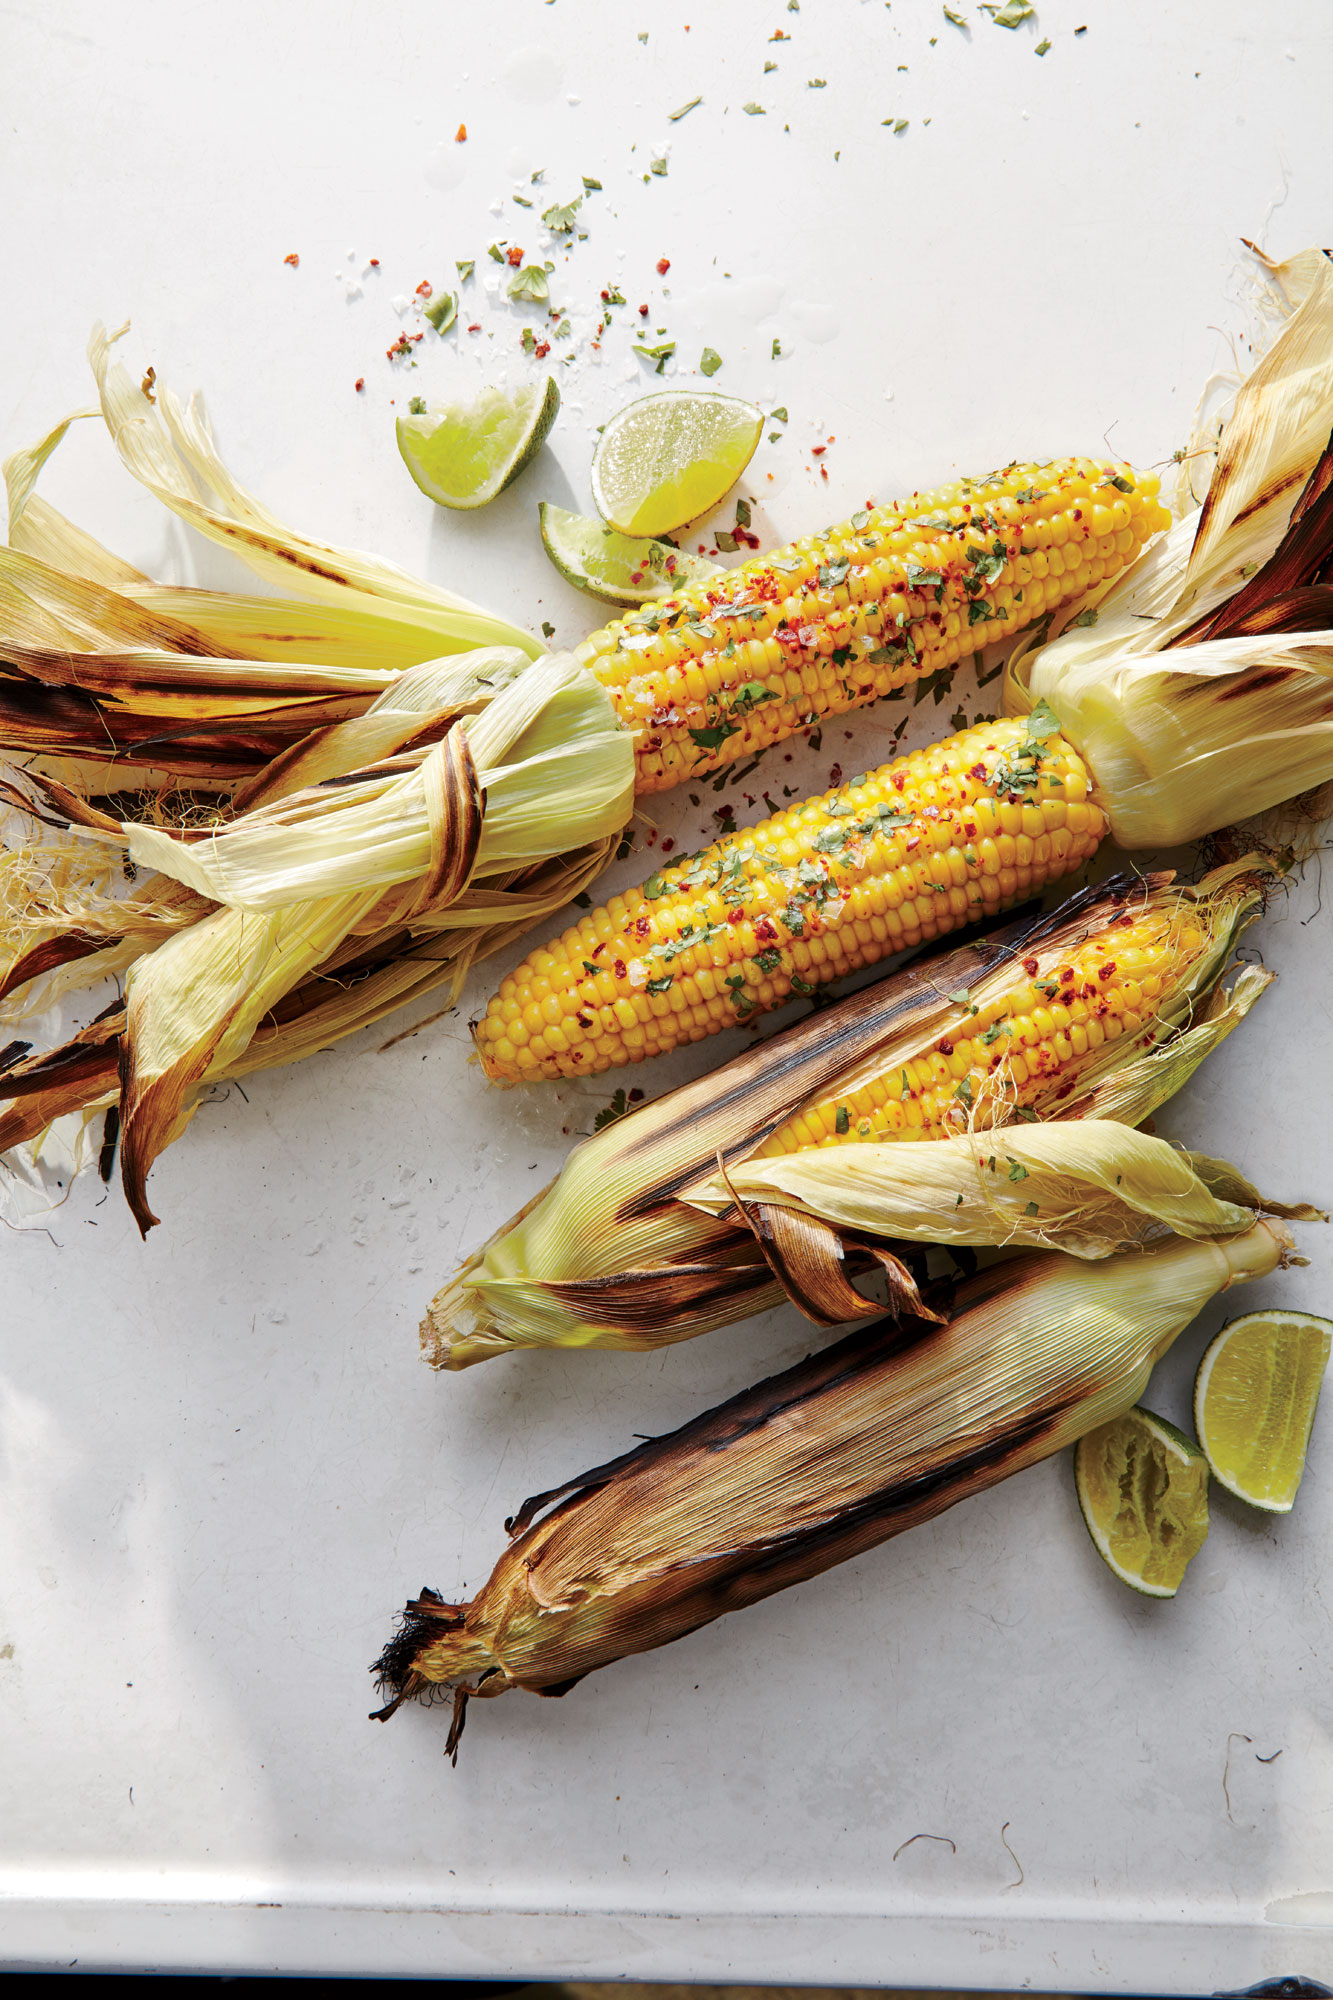 ck-Grill-Steamed Corn with Cilantro and Chile Flakes